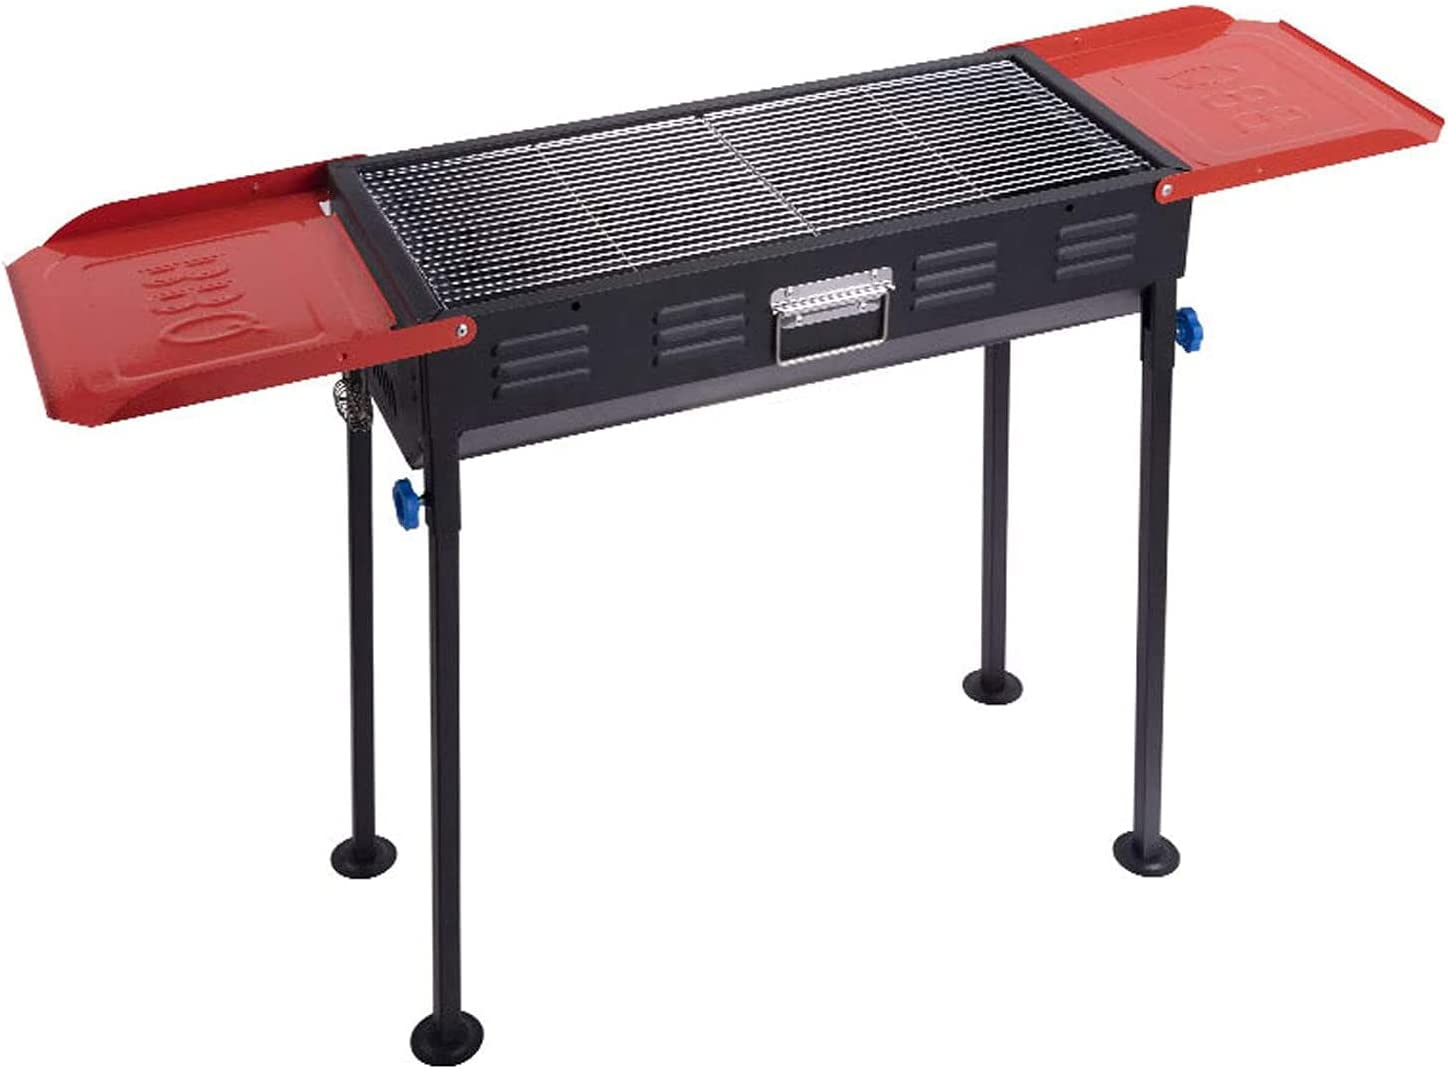 Portable Mail order Folding Charcoal Barbecue Outdoor Overseas parallel import regular item Stainless Steel Grill